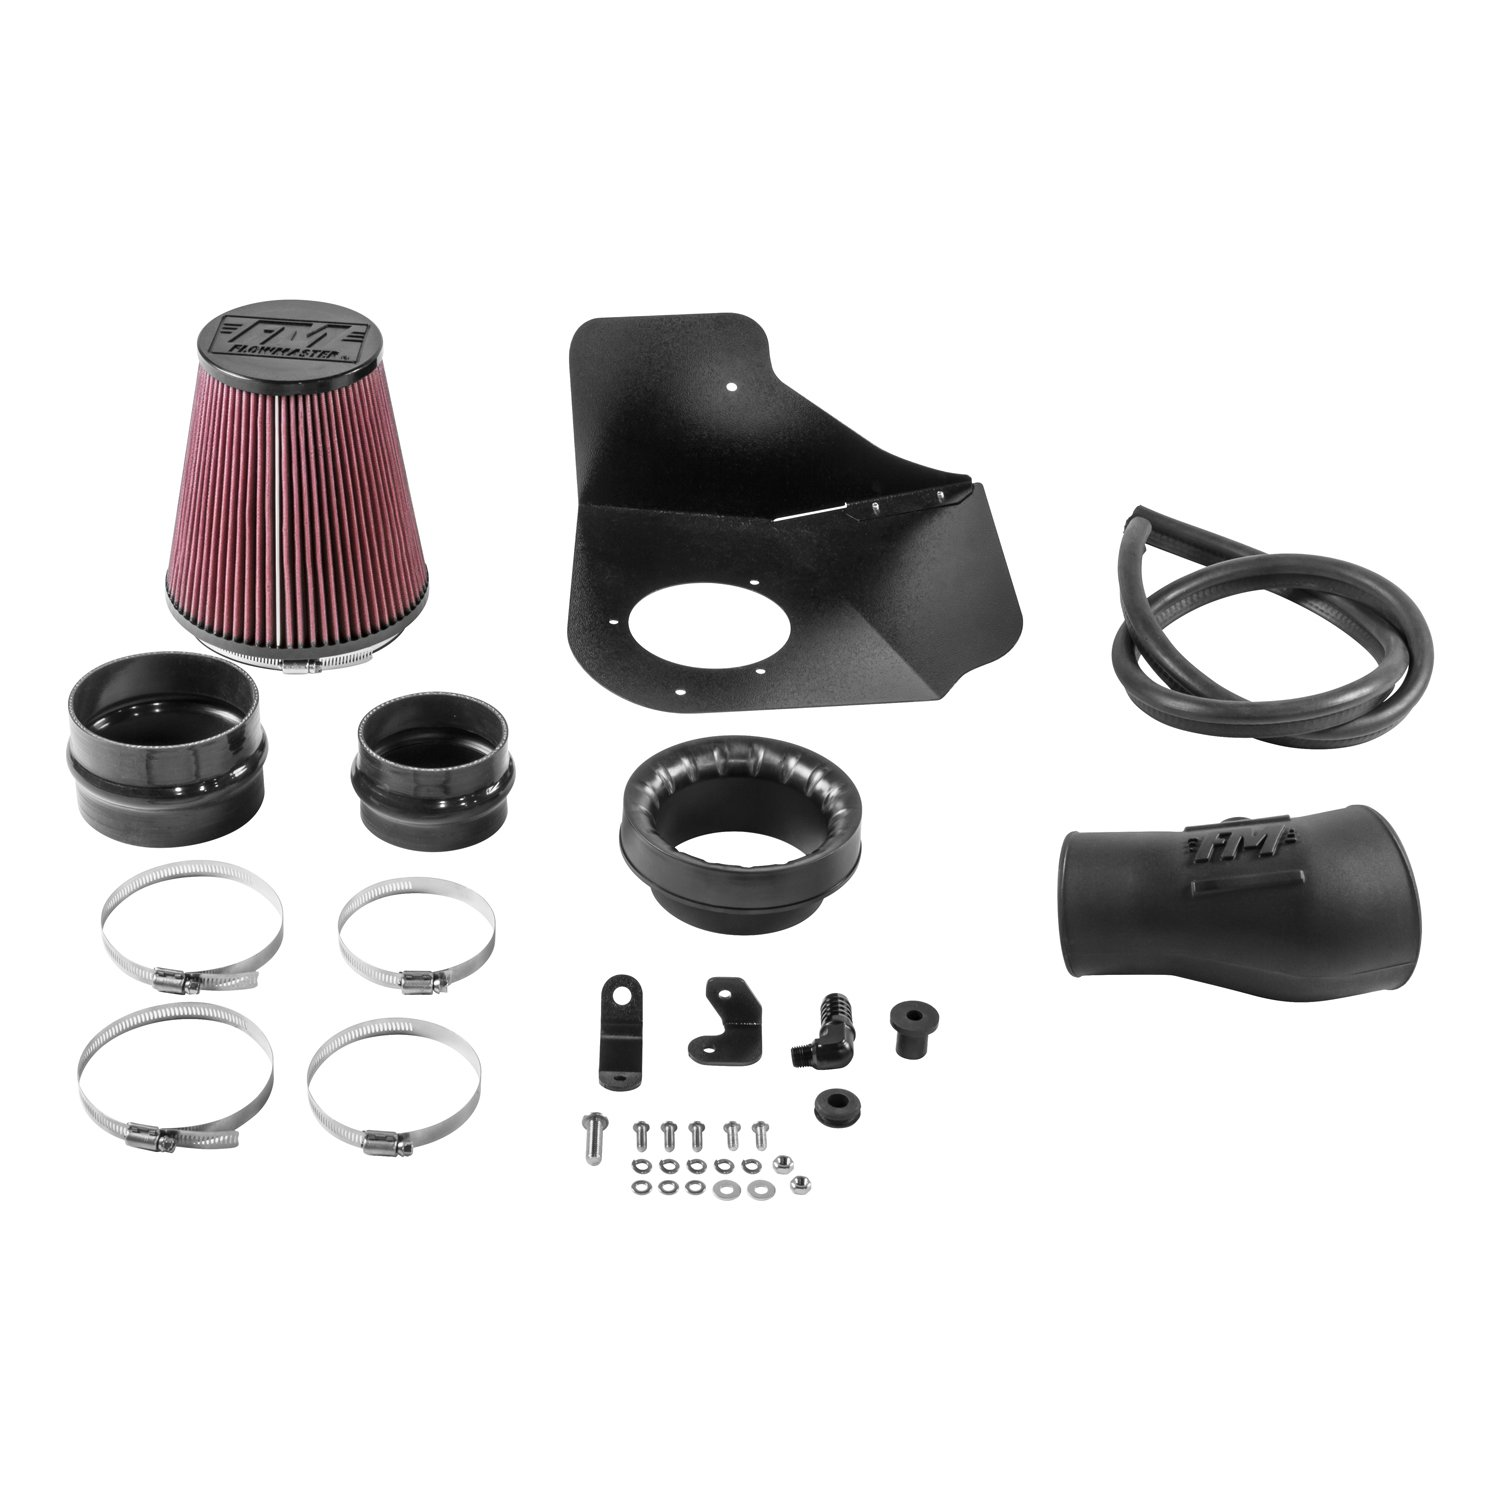 Flowmaster 615108 Cold Air Intake Kit